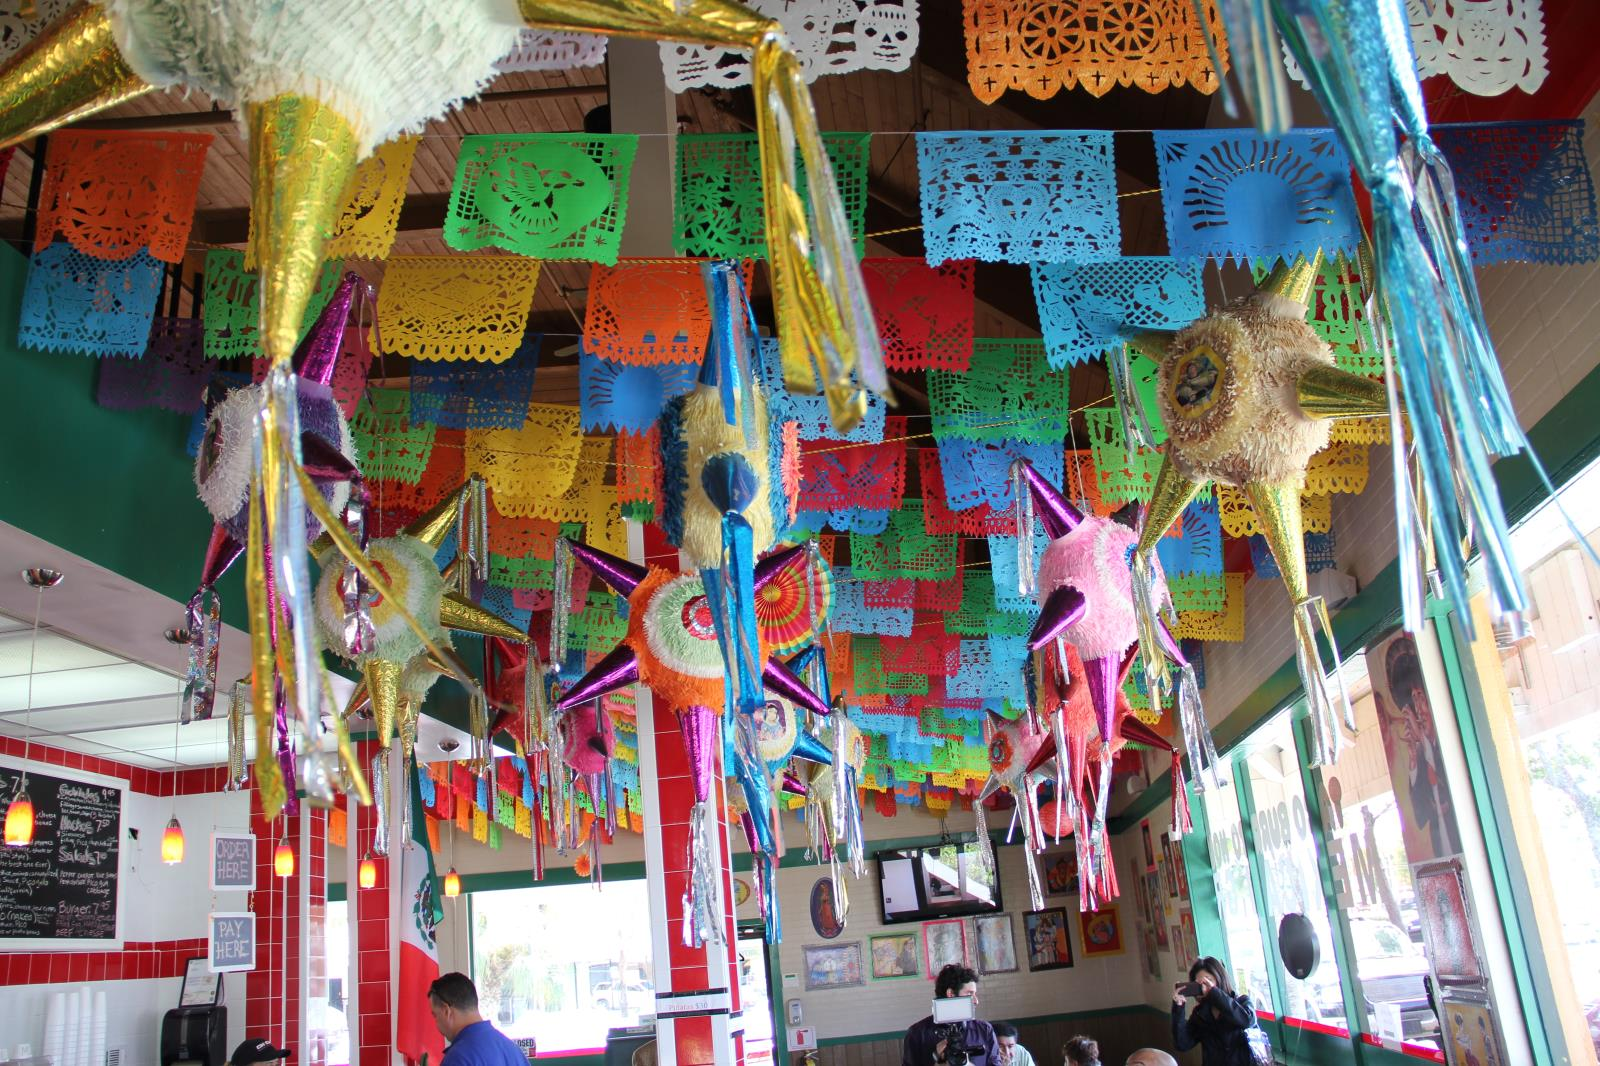 Pinatas on Chicano's ceiling